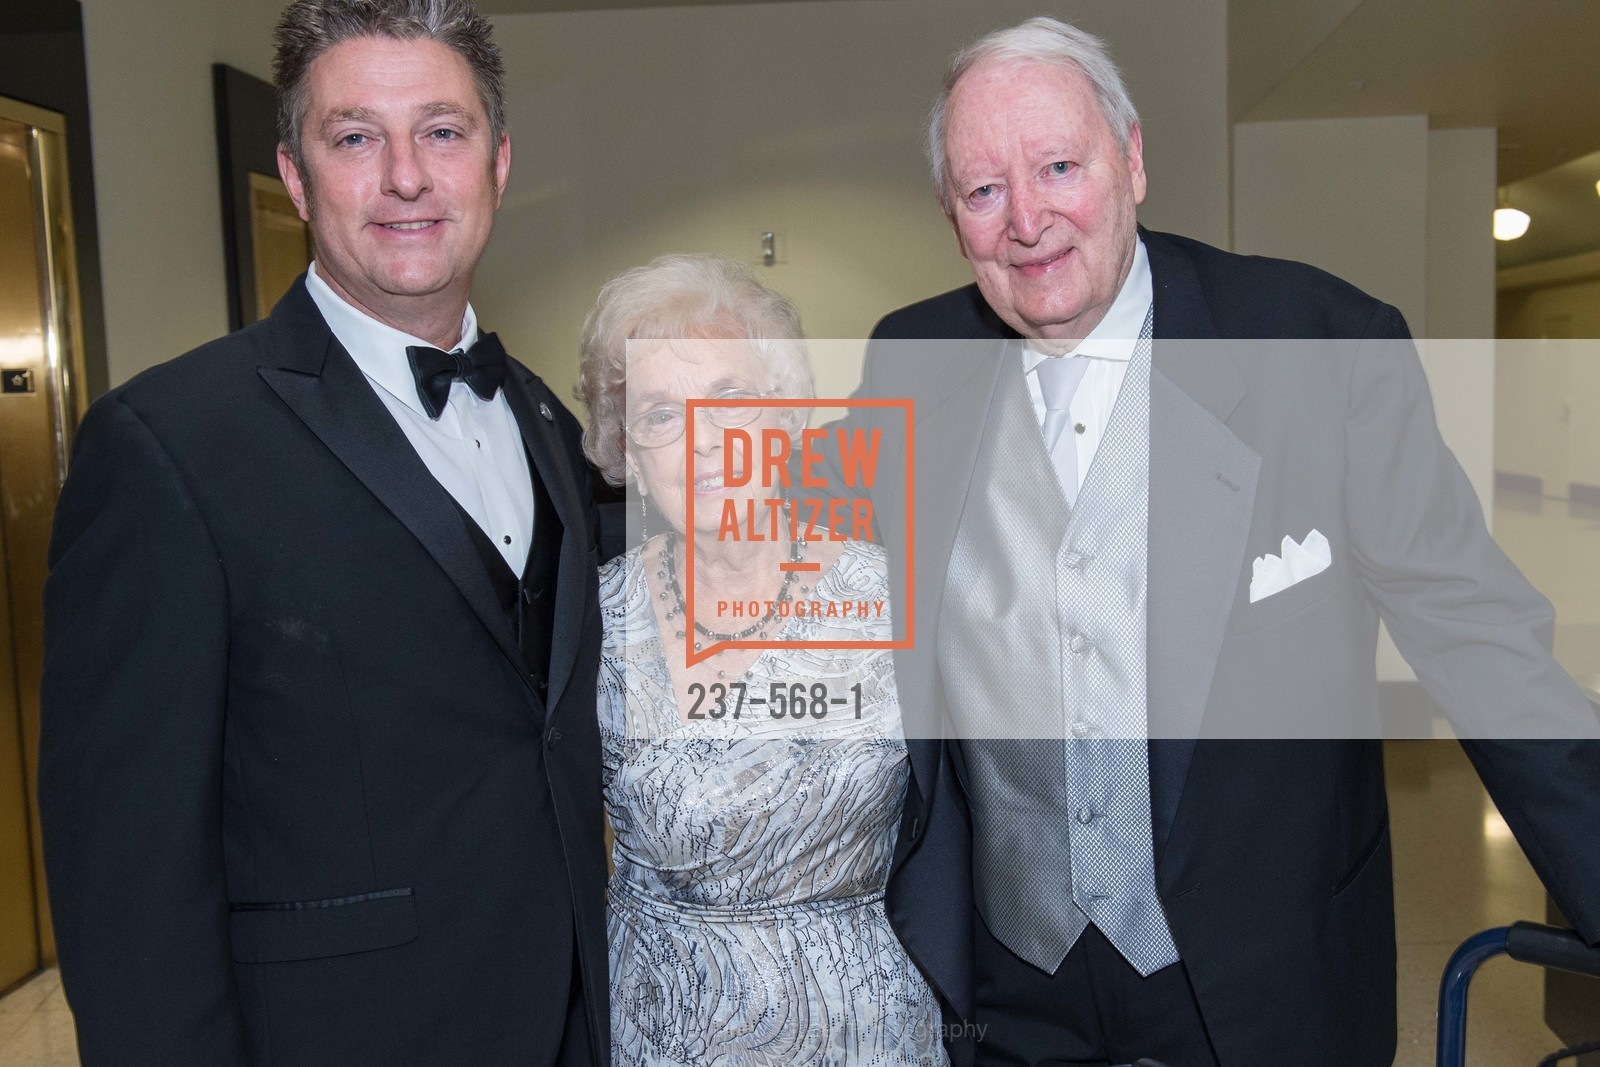 Shawn Stark, Jean Spees, Dick Spees, SOTHEBY'S  Hosts a Private Viewing of Highlights from the Collection of MRS. PAUL MELLON, US, September 17th, 2014,Drew Altizer, Drew Altizer Photography, full-service agency, private events, San Francisco photographer, photographer california